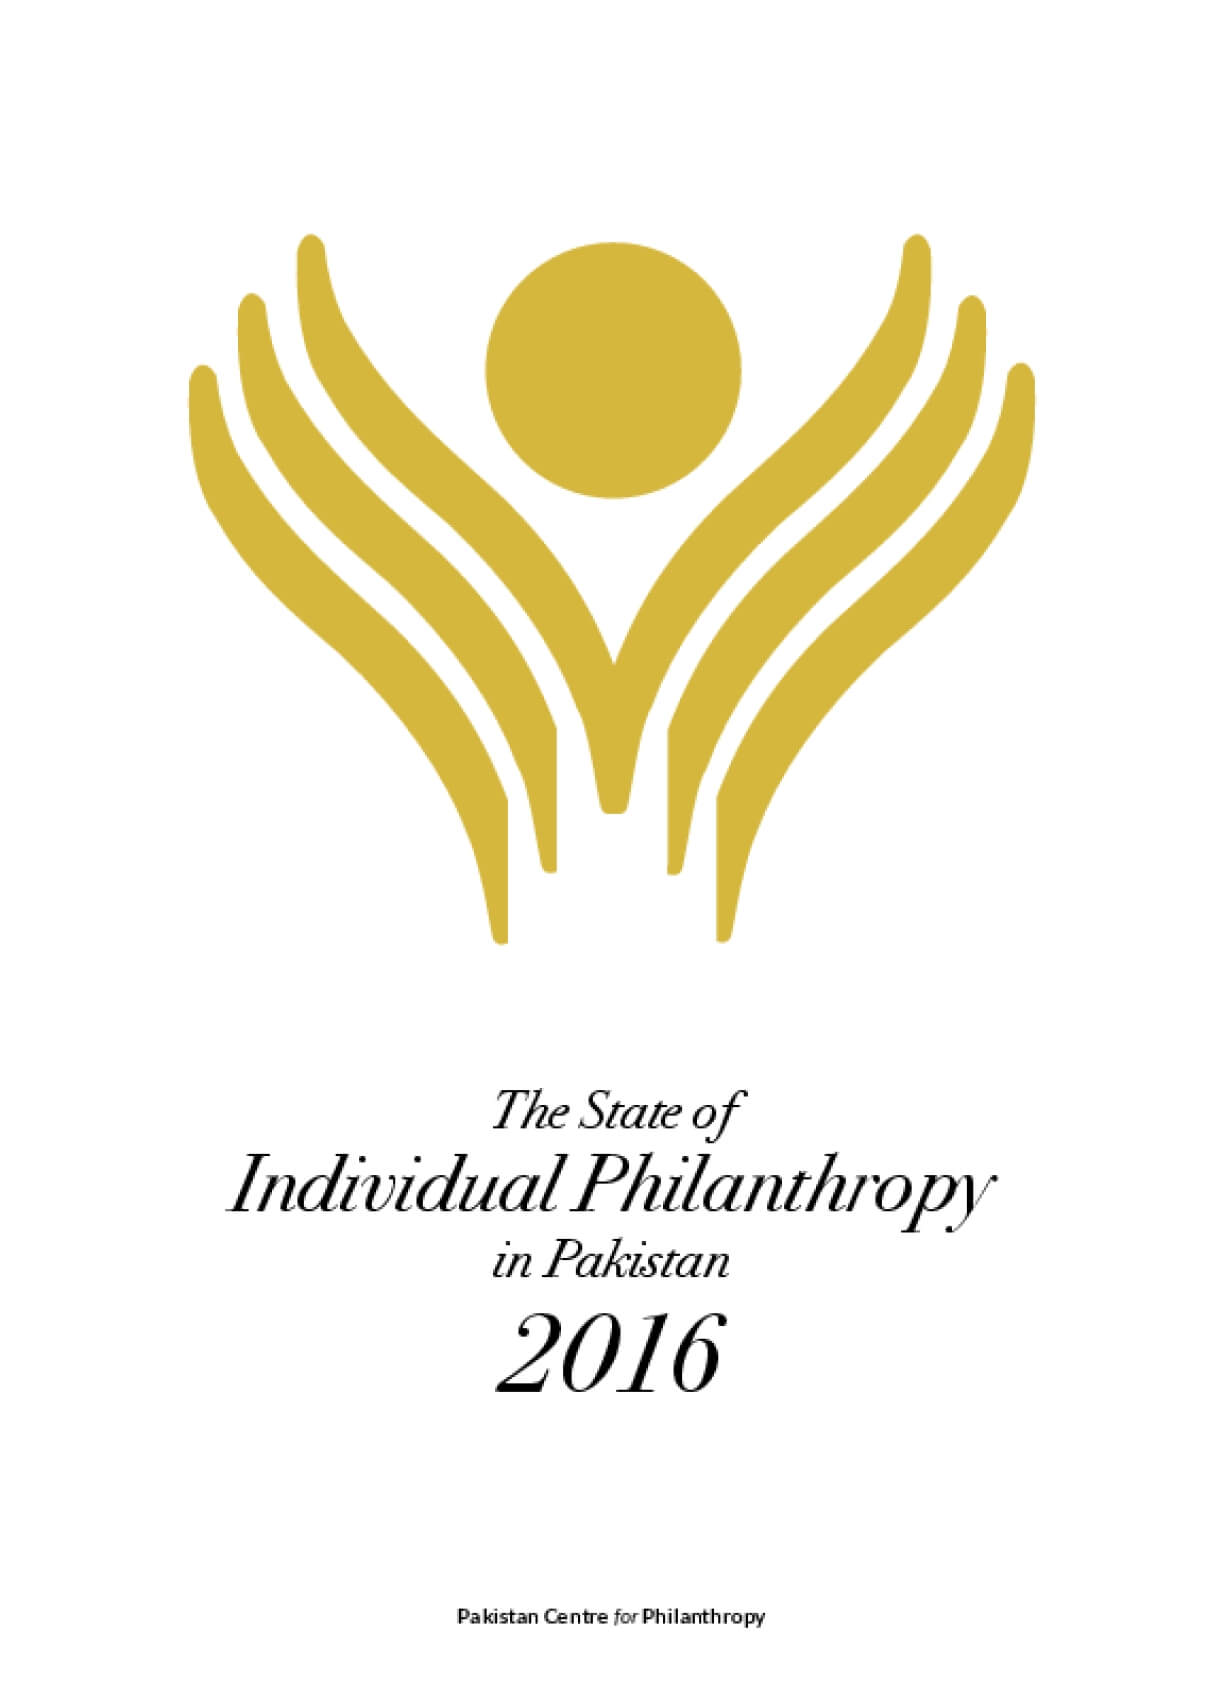 The State of Individual Philanthropy in Pakistan